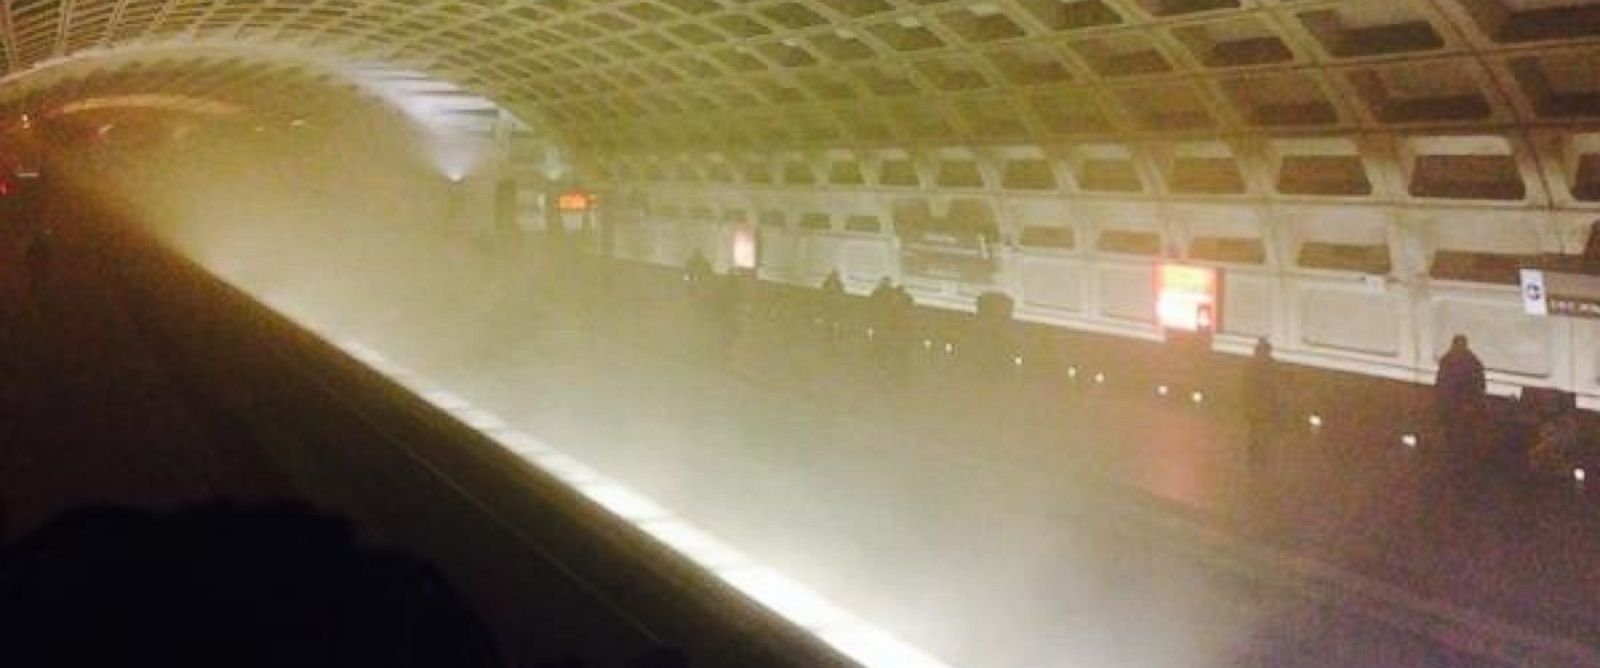 "LesleyJLopez posted this photo to Twitter, writing, ""Evacuated from lefant station #unsuckmetro #wmata"" on Jan. 12, 2015."